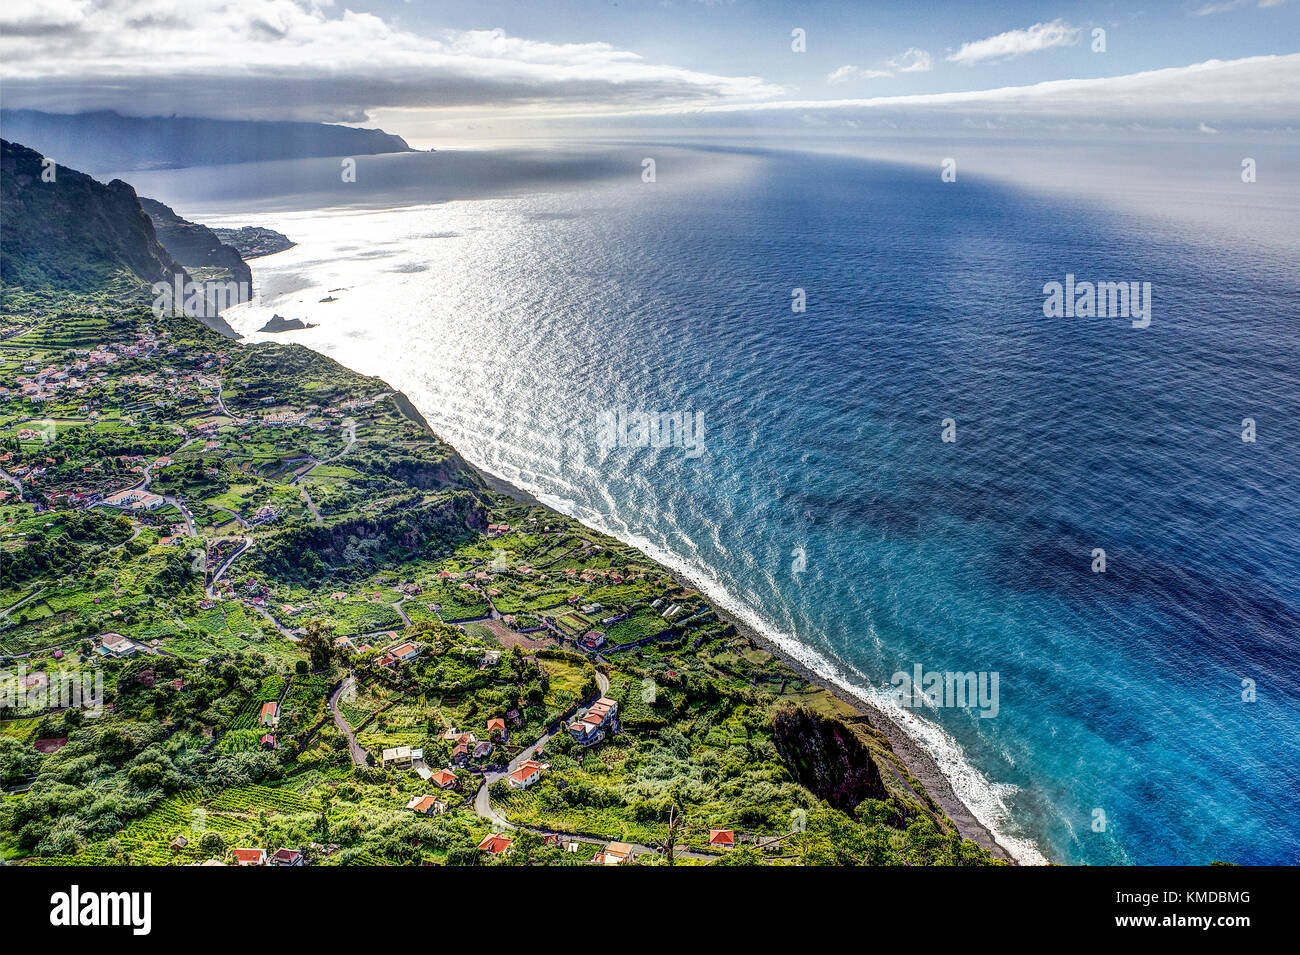 Viewpoint Madeira Portugal - amazing view over atlantic ocean - Stock Image